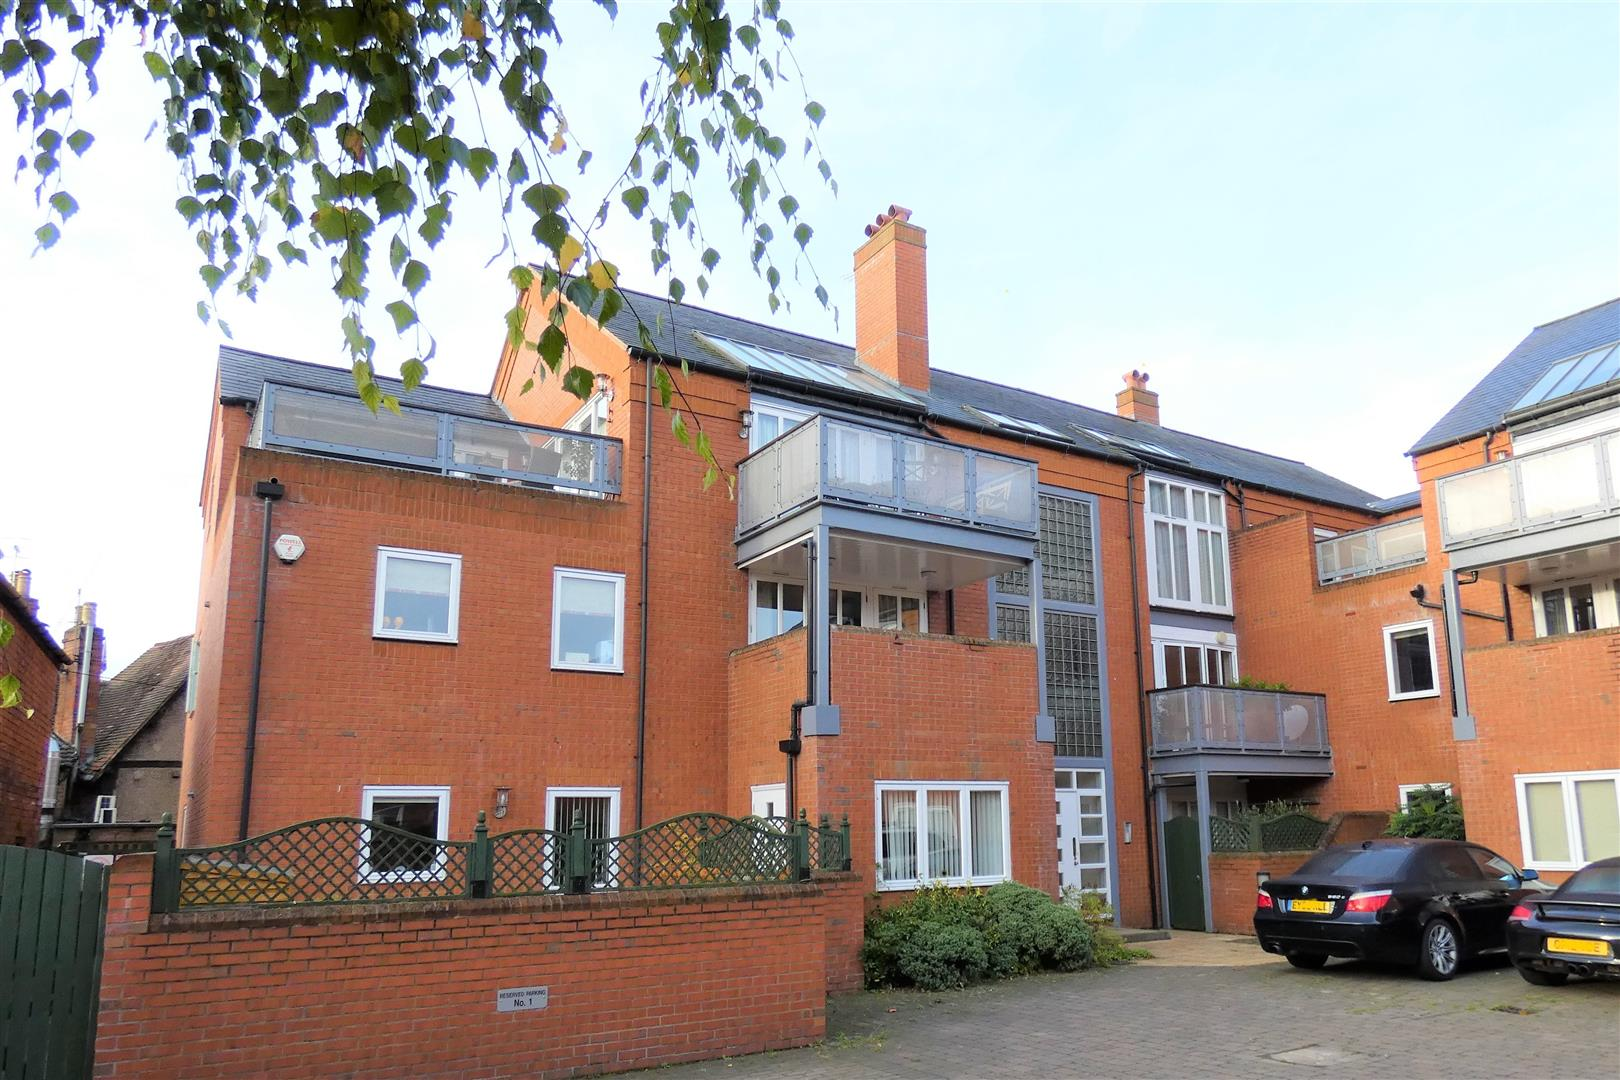 2 Bedrooms Apartment Flat for sale in Printers Place, Stratford upon Avon